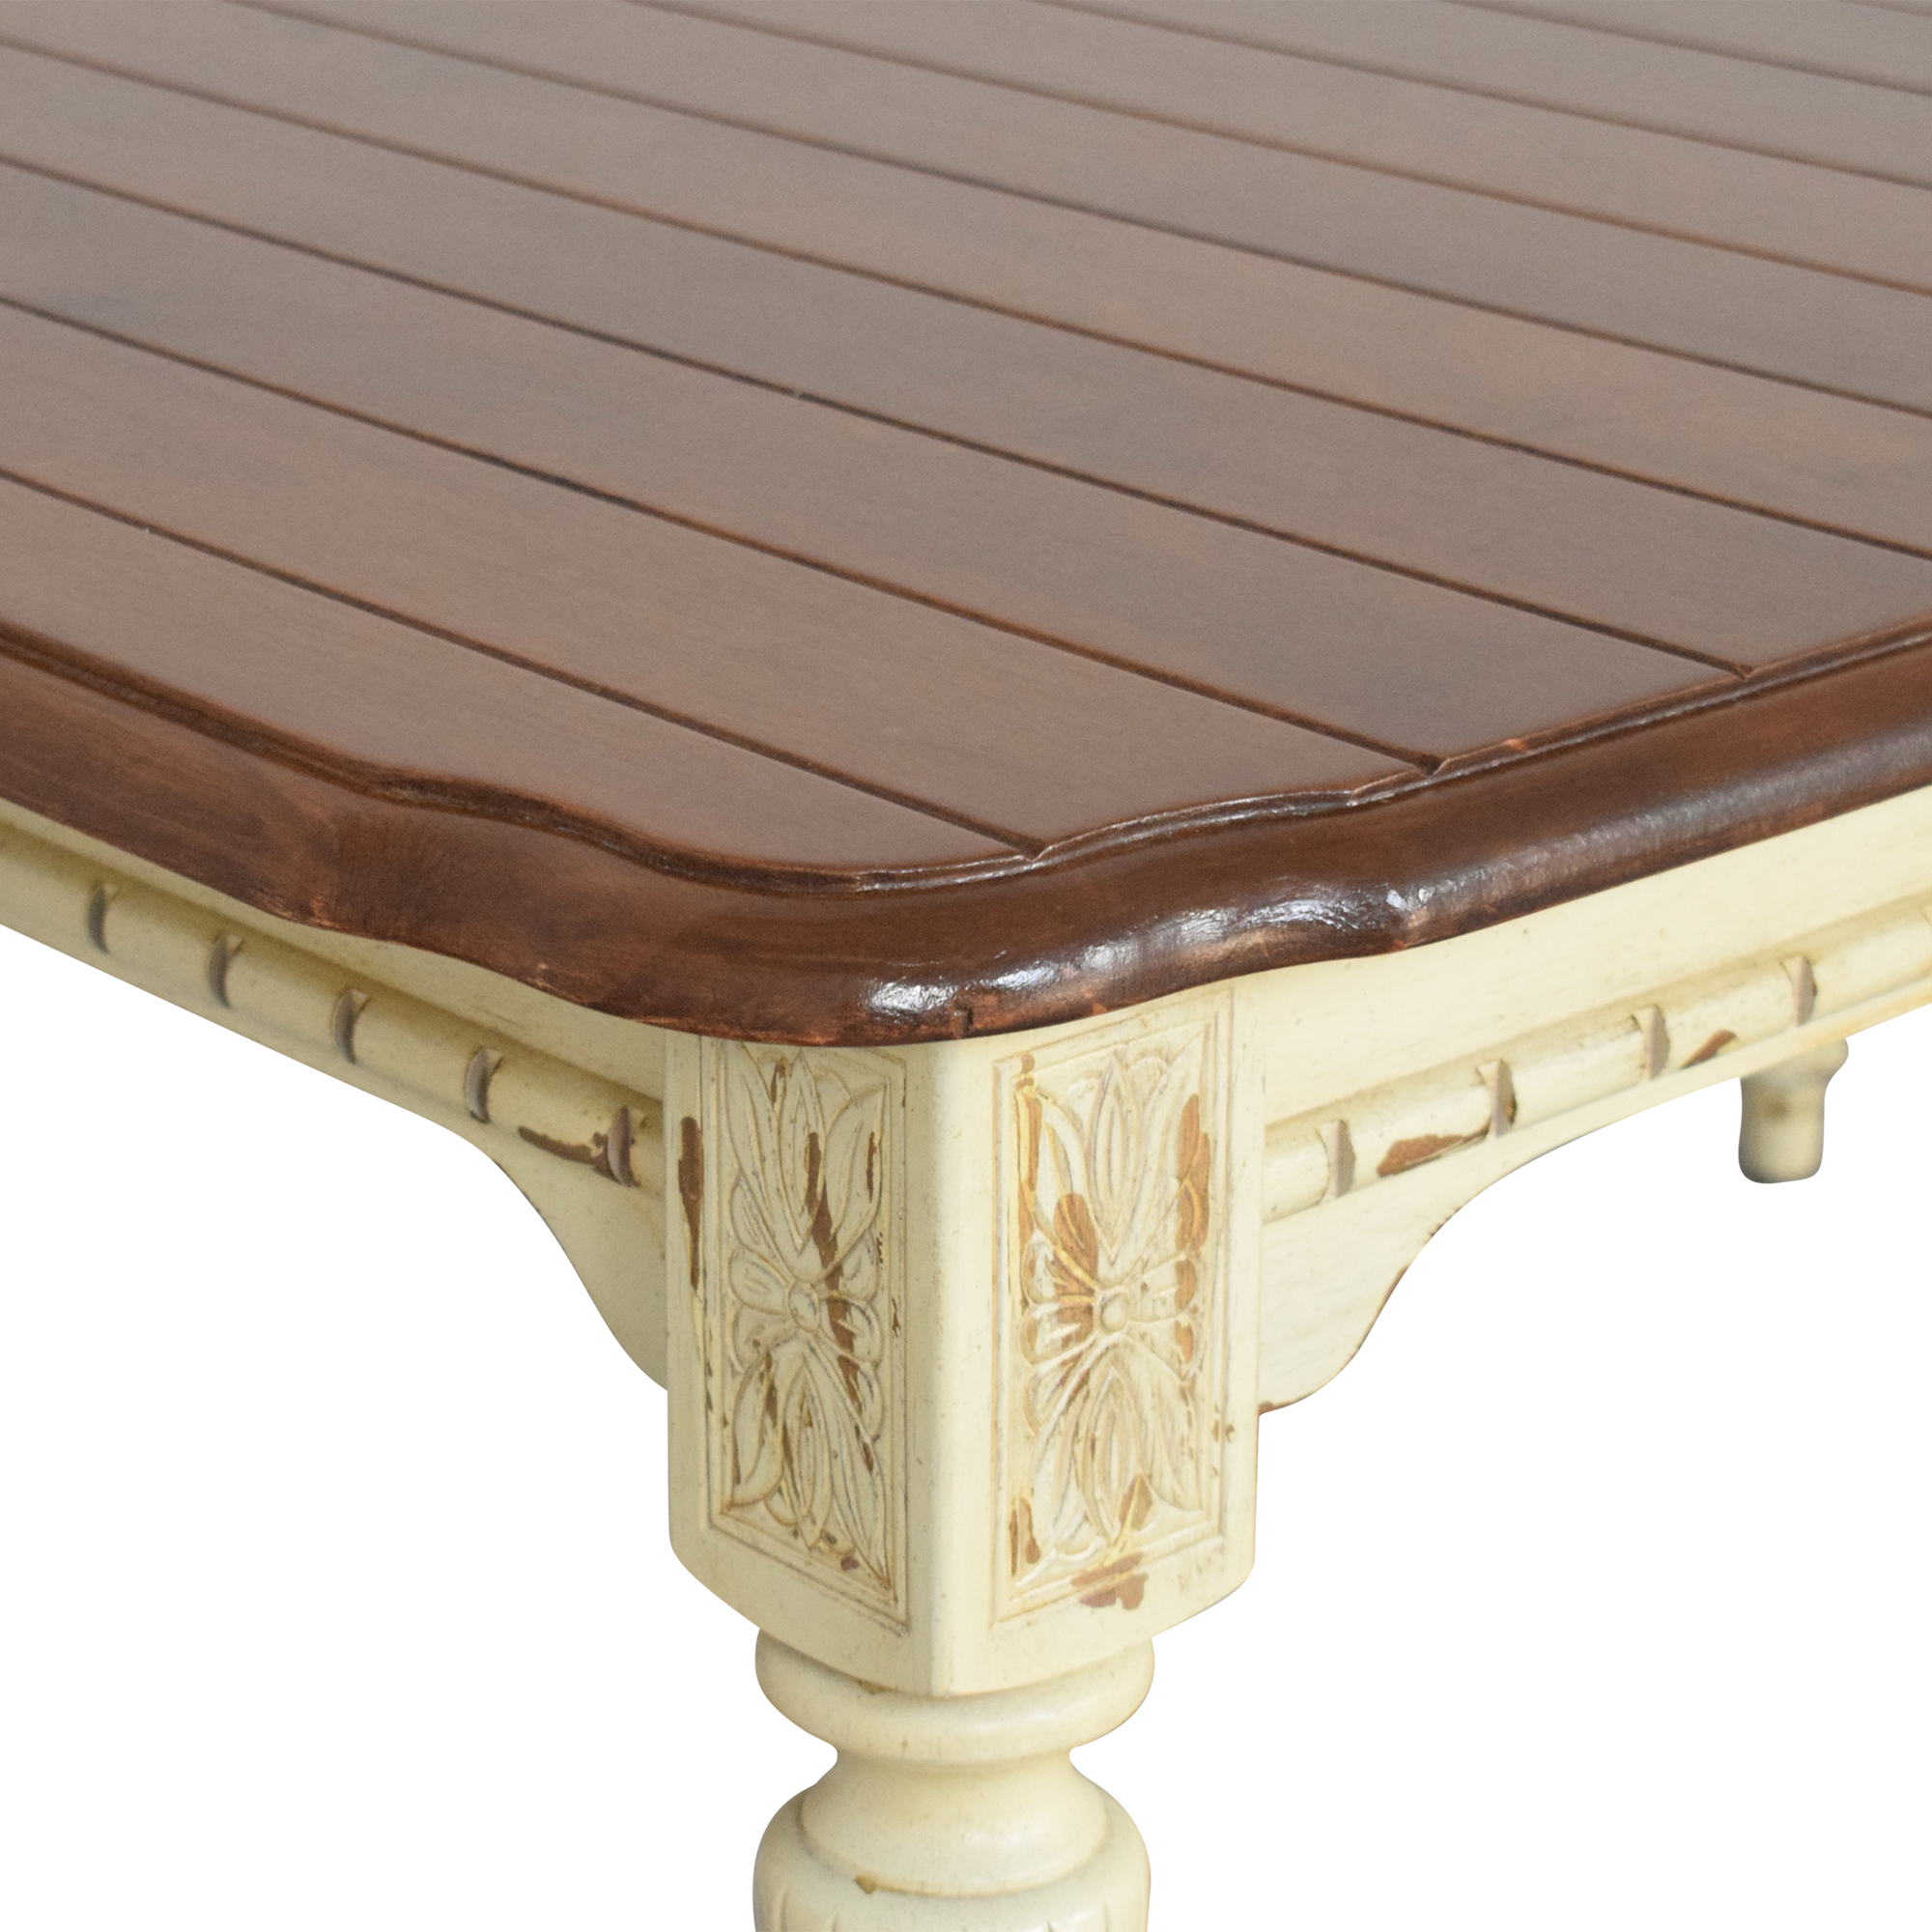 Rustic Extendable Dining Table brown & cream